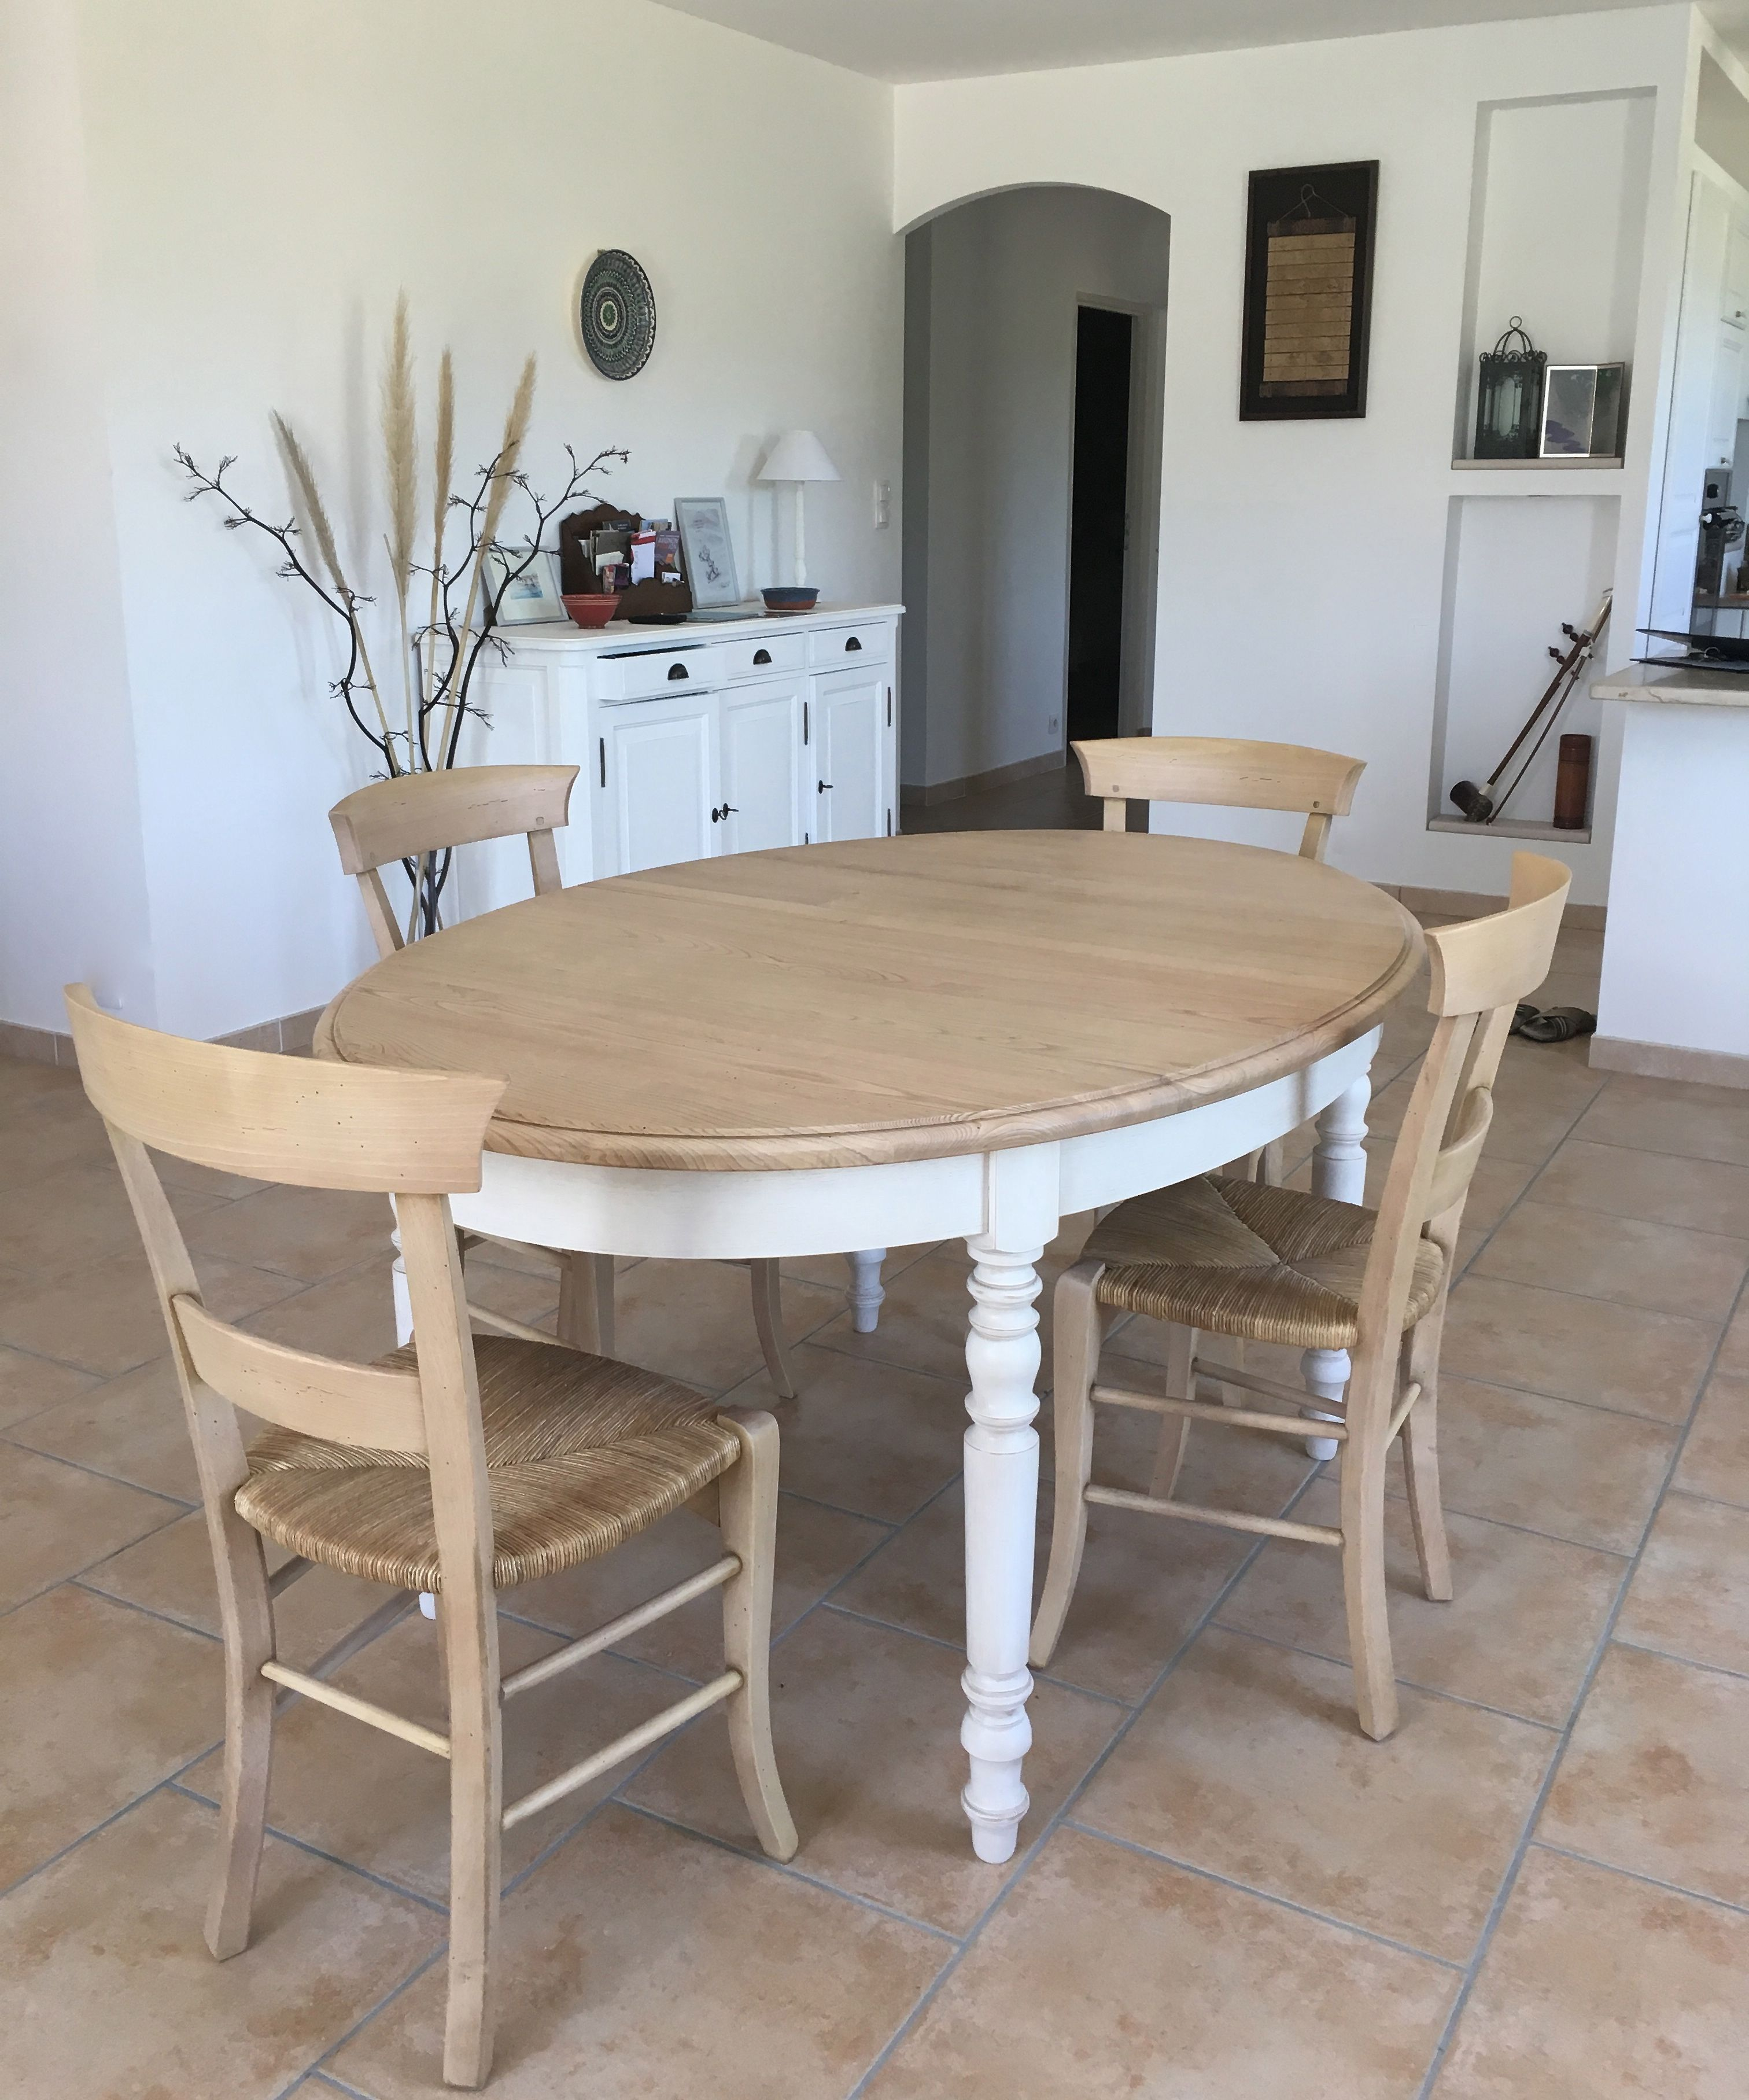 Table Salle Manger Ovale Bois Naturel Massif Et Blanc Ambiance Campagne Chic In 2020 Wood Dining Room Metal Dining Table Oval Dining Room Table